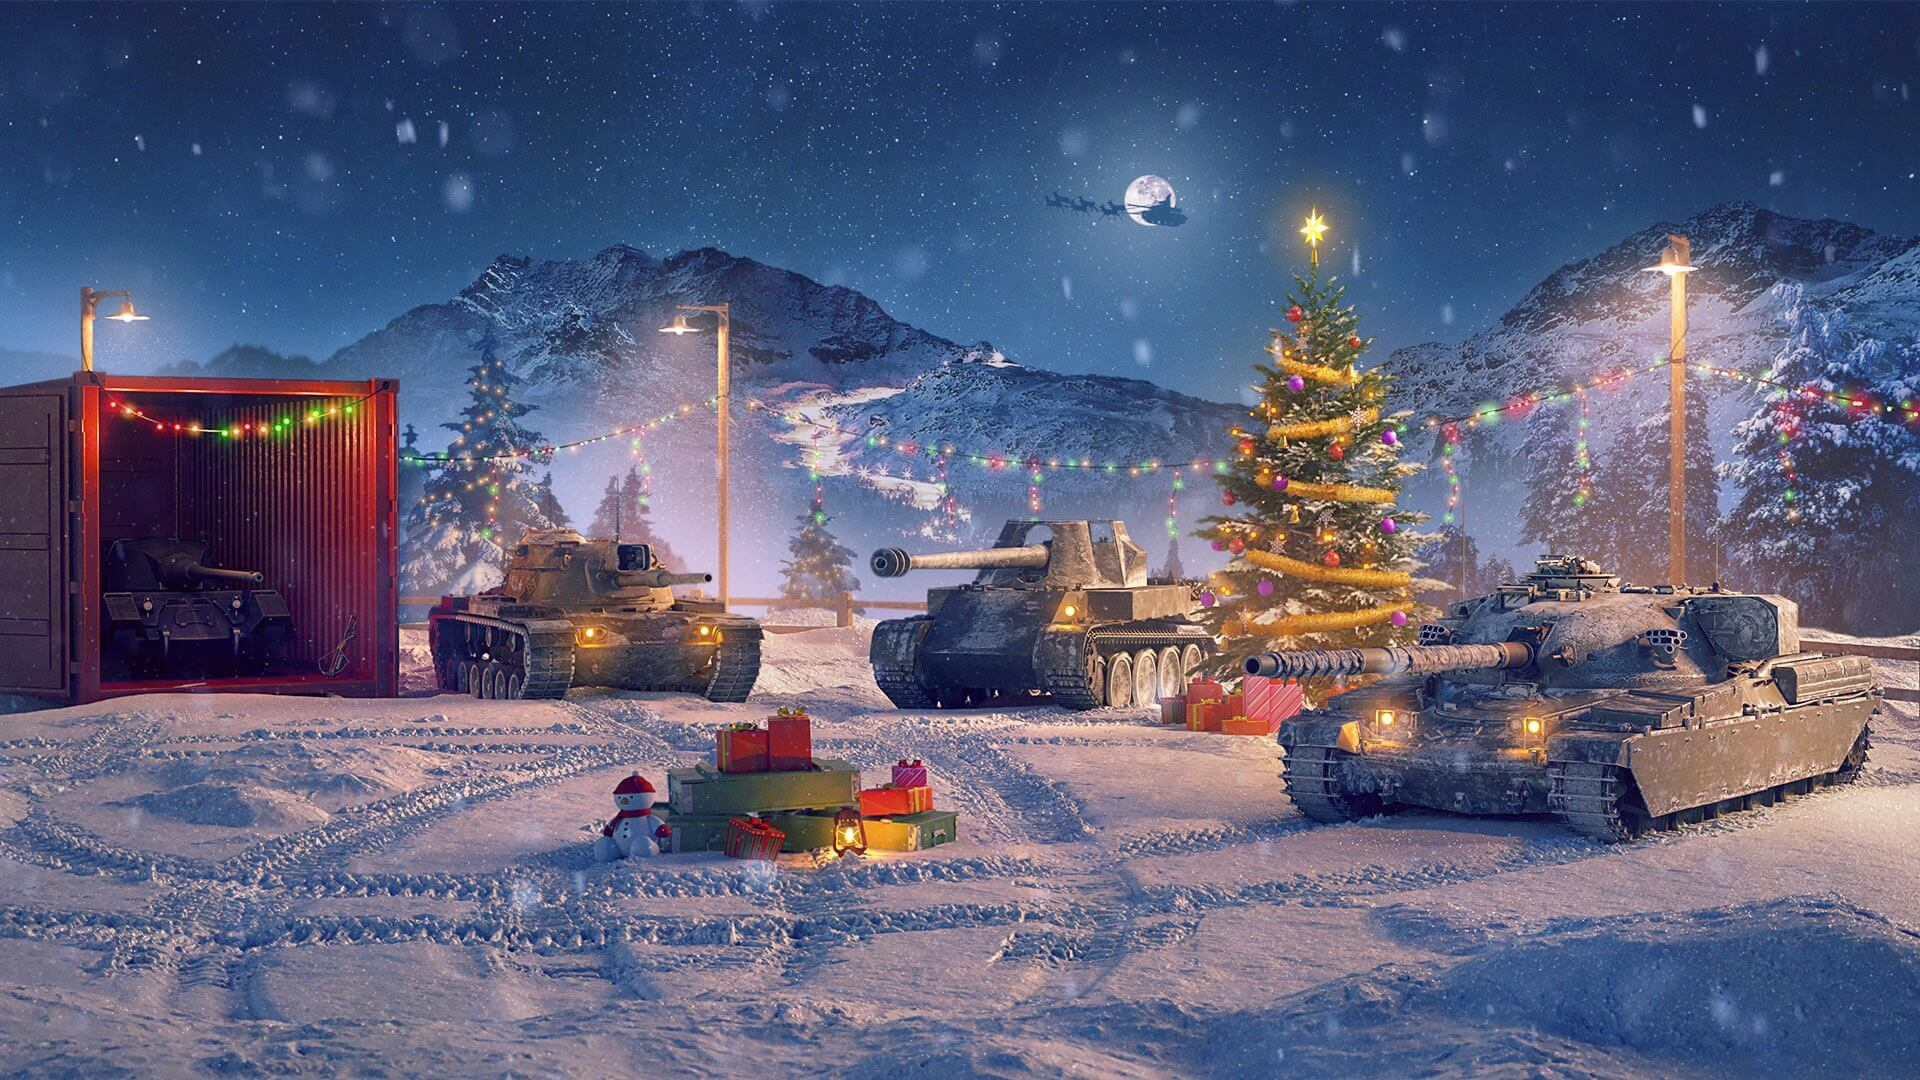 2020 Christmas Tank World Of Tanks New Year's Adventure: Auction and Lucky Draw! | World of Tanks Blitz